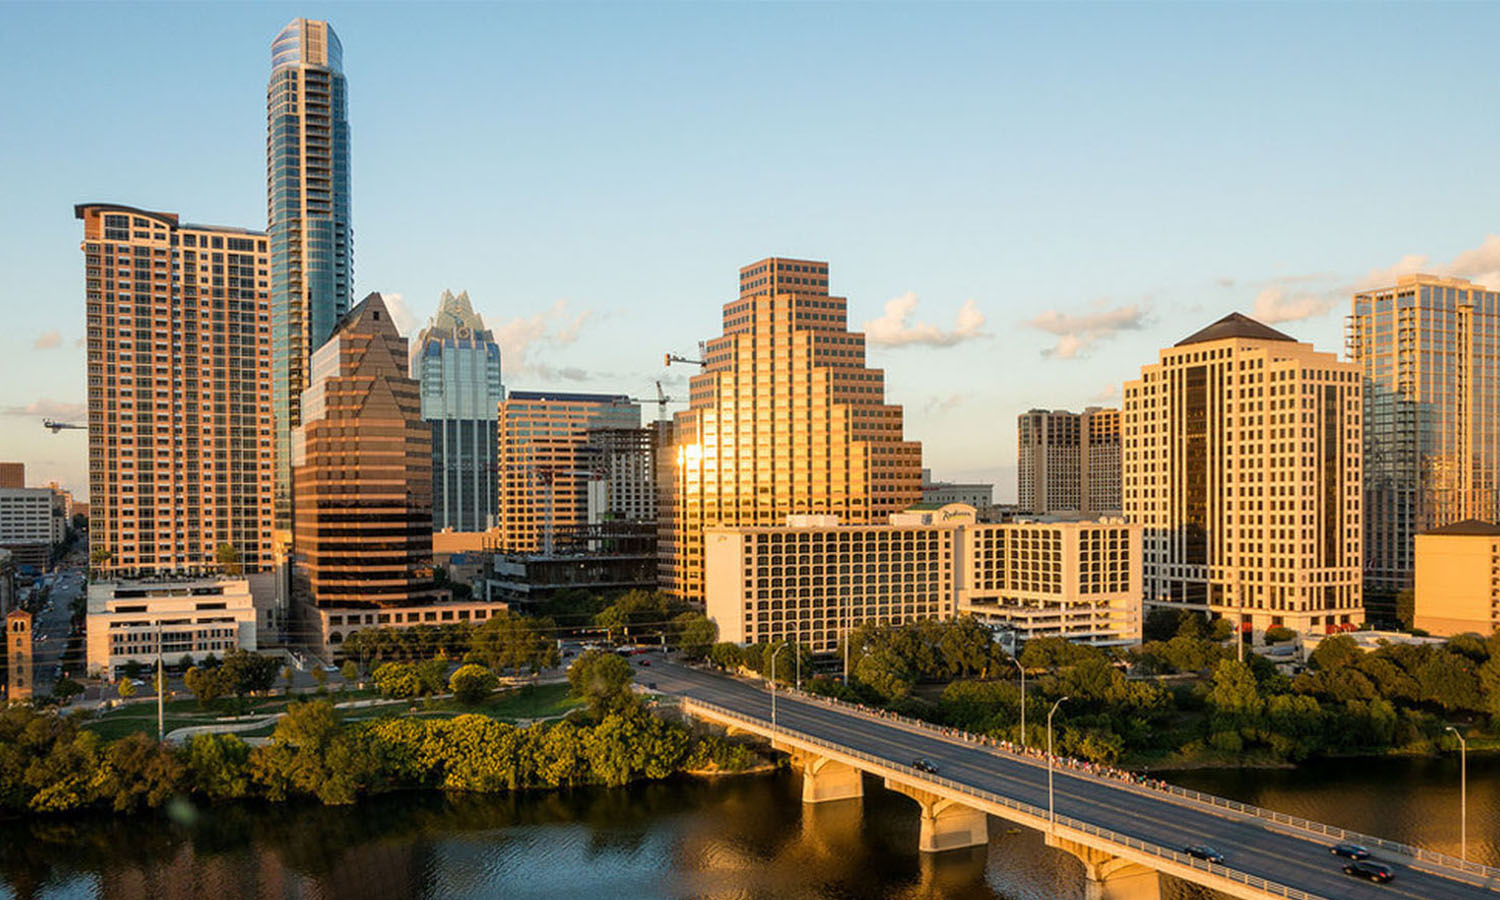 How to Get a Job in Austin